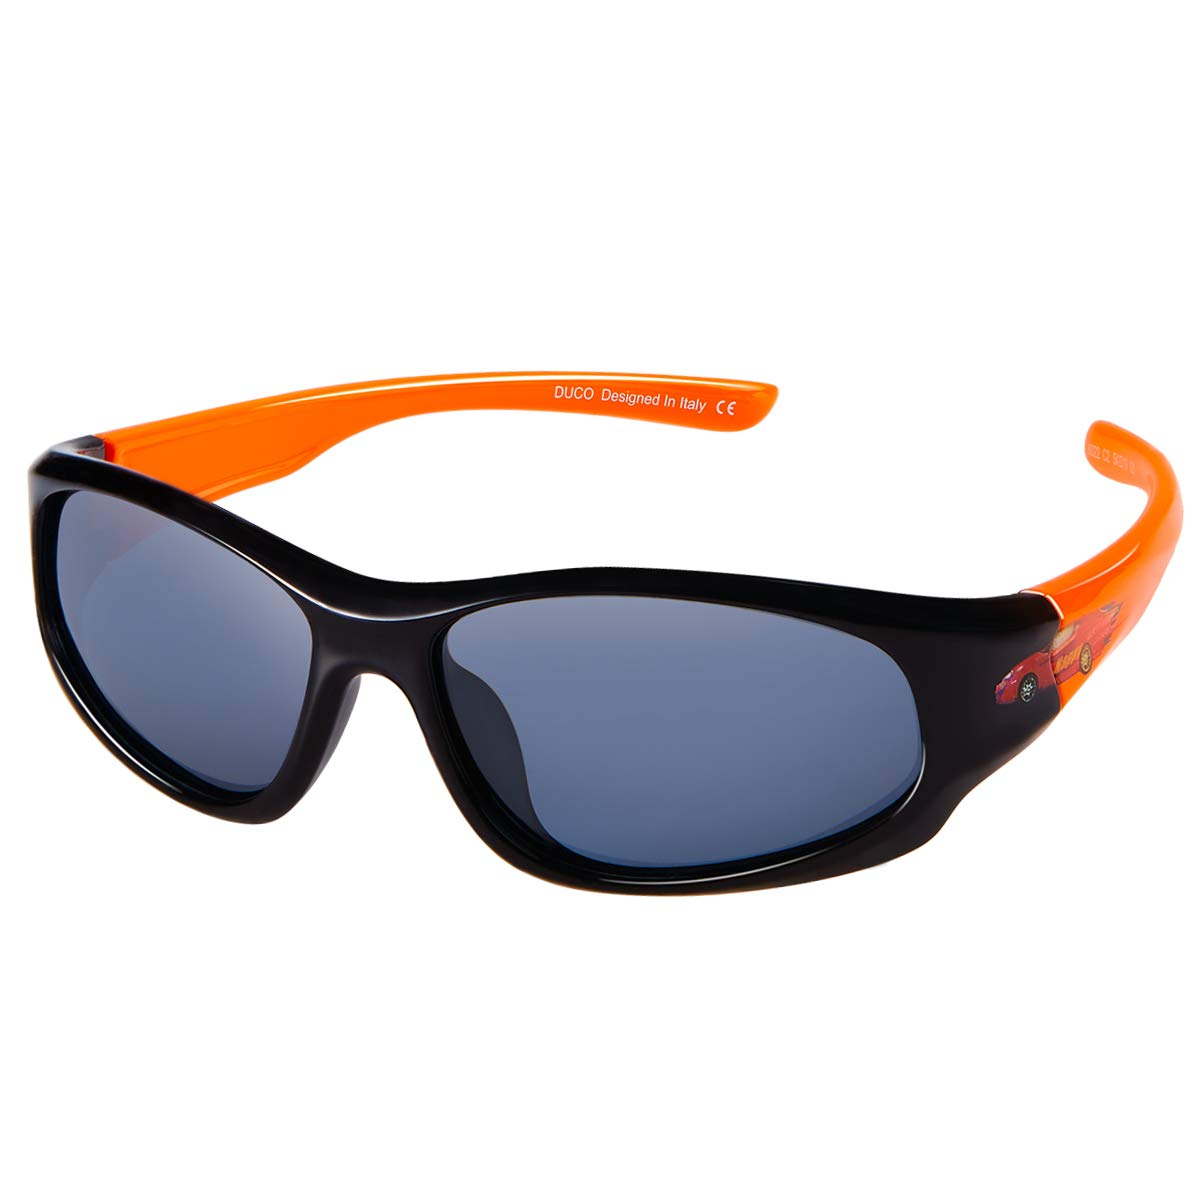 K006-Orange-US DUCO Kids Sports Style Polarized Sunglasses Flexible Frame For Boys and Girls K006 55